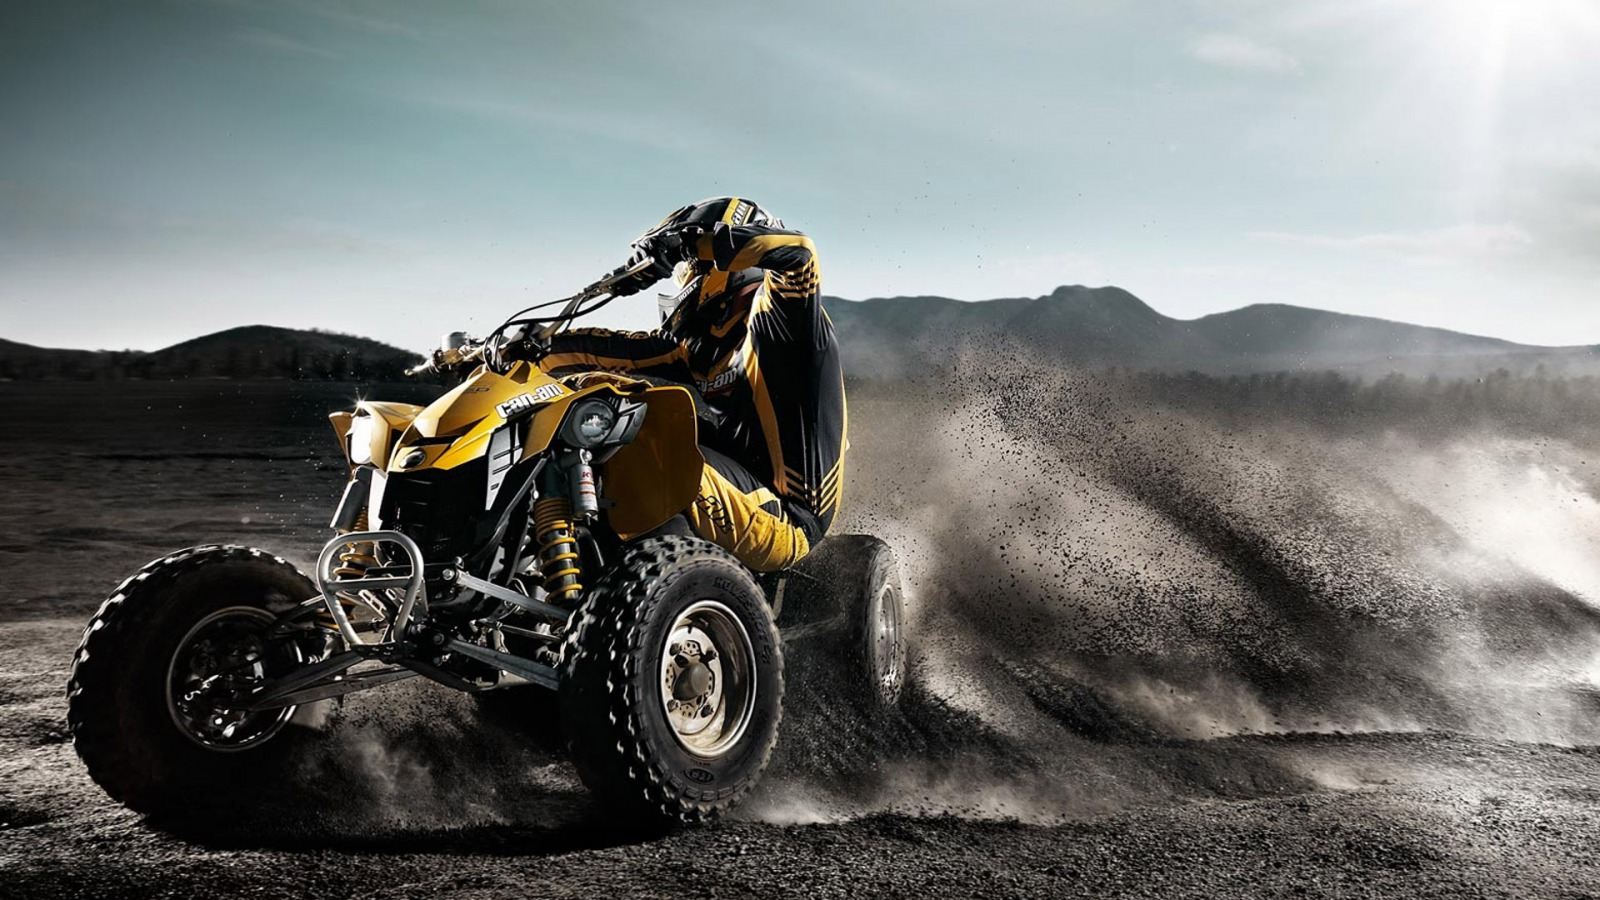 Cool ATV Drift Wallpaper High Res Pics 621166 2556 Wallpaper Cool 1600x900